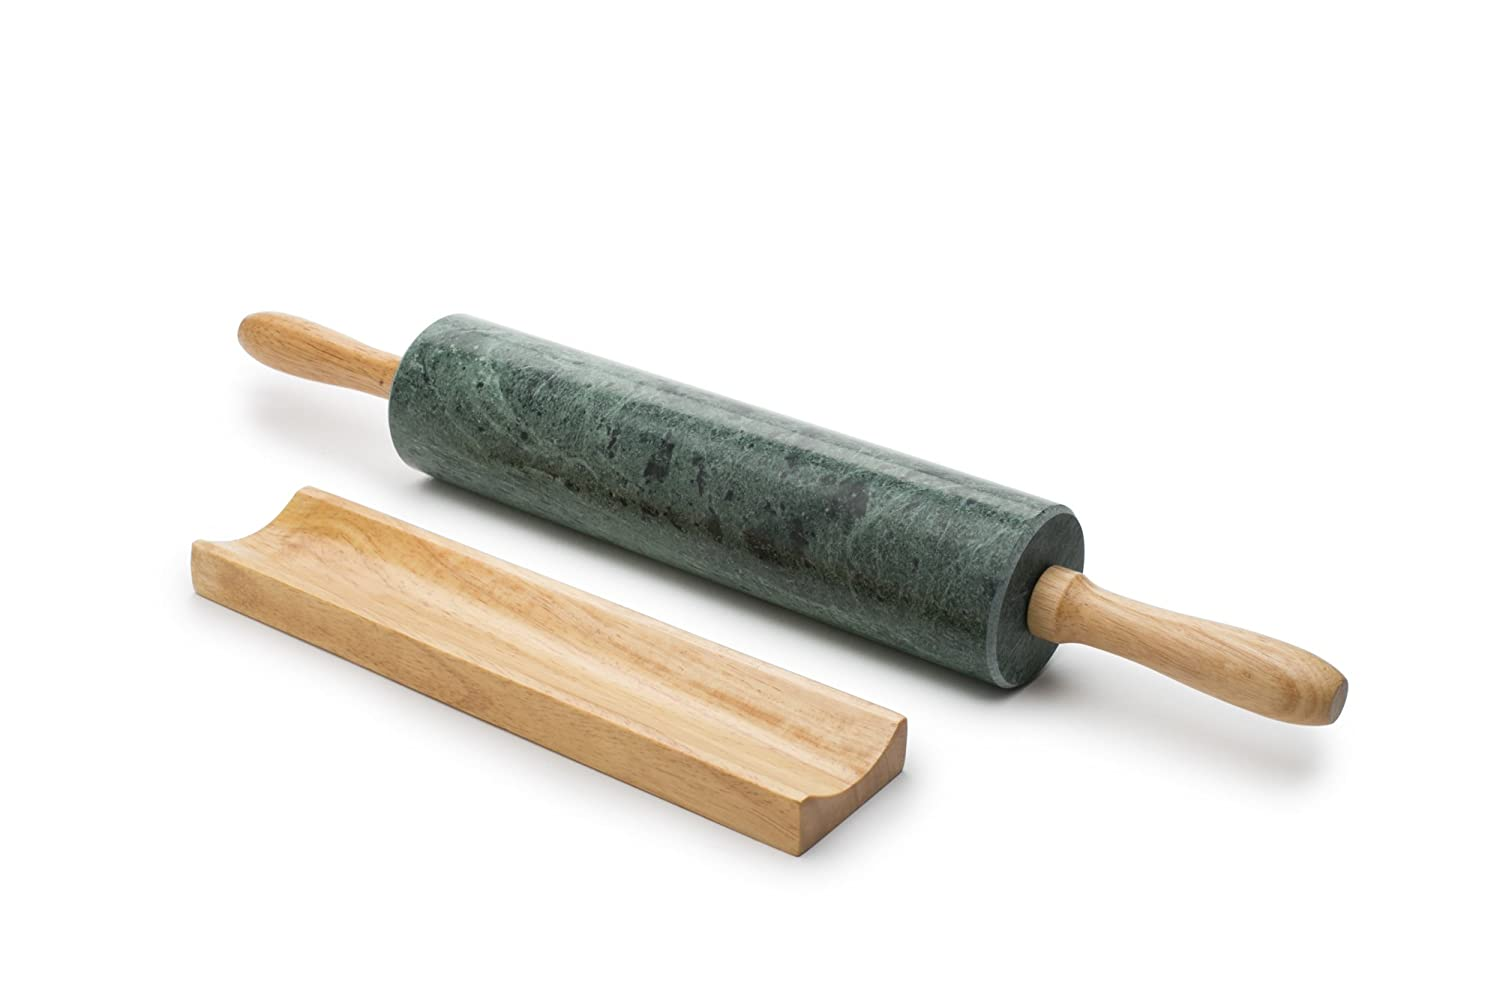 Amazon.com: Fox Run 3842 Marble Rolling Pin and Base, Green: Kitchen ...